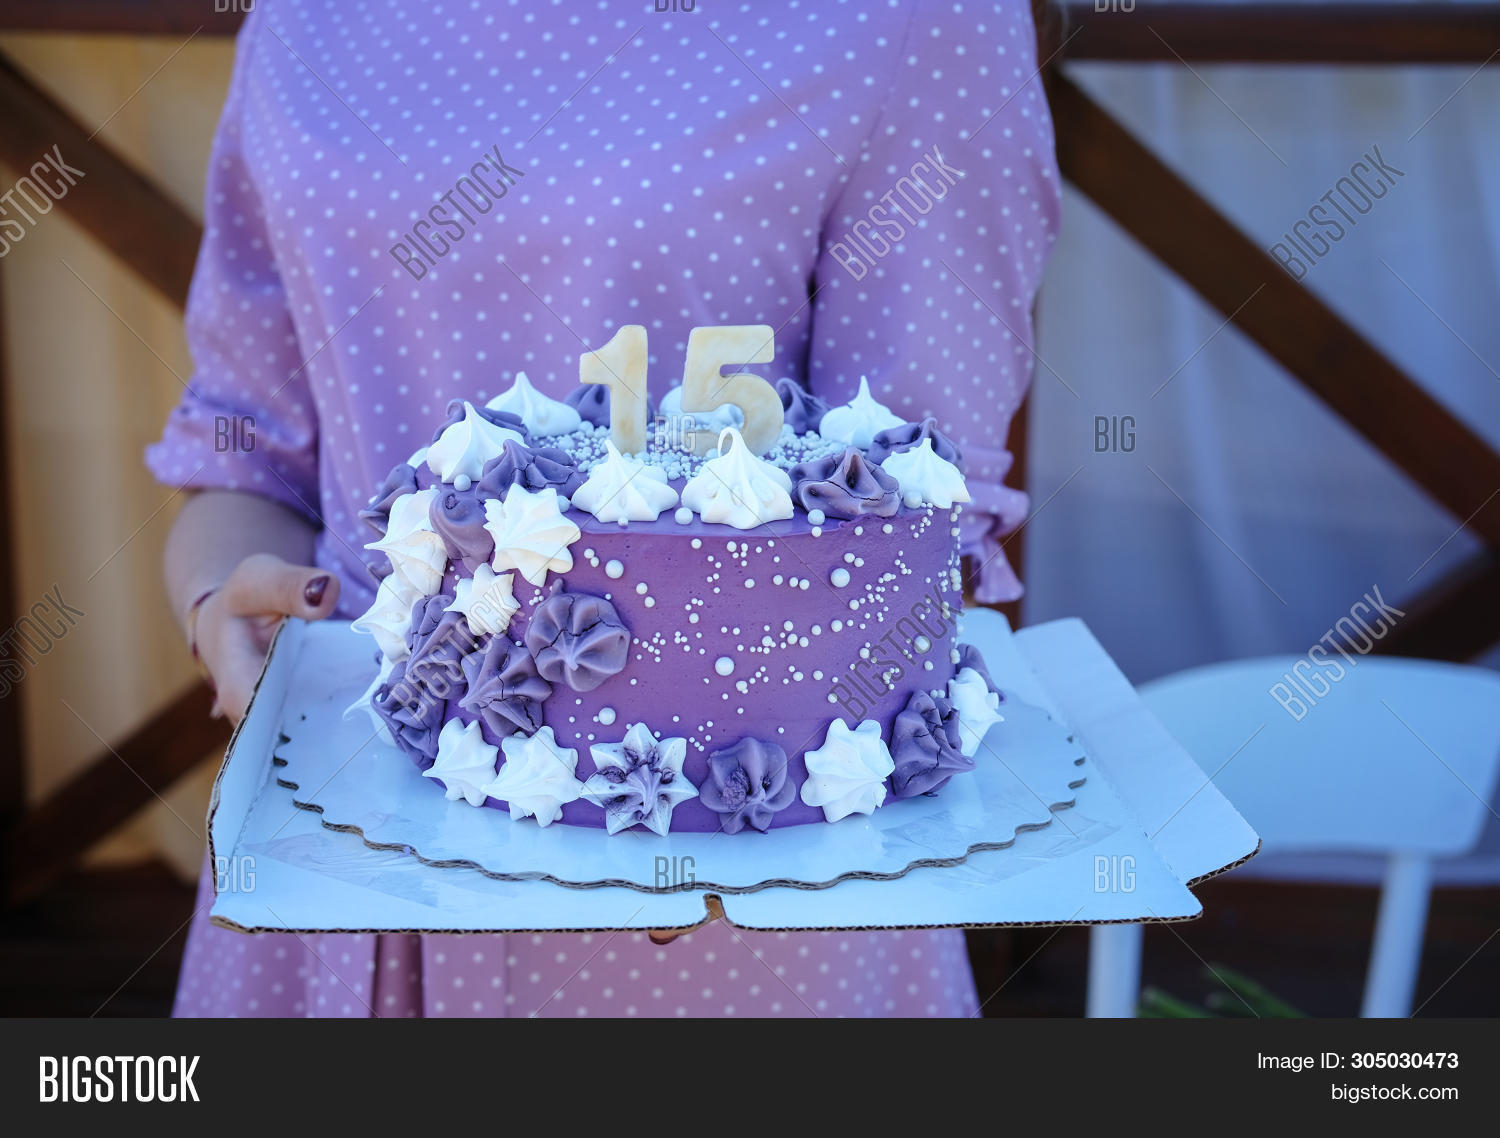 Incredible Young Beautiful Girl Image Photo Free Trial Bigstock Birthday Cards Printable Opercafe Filternl